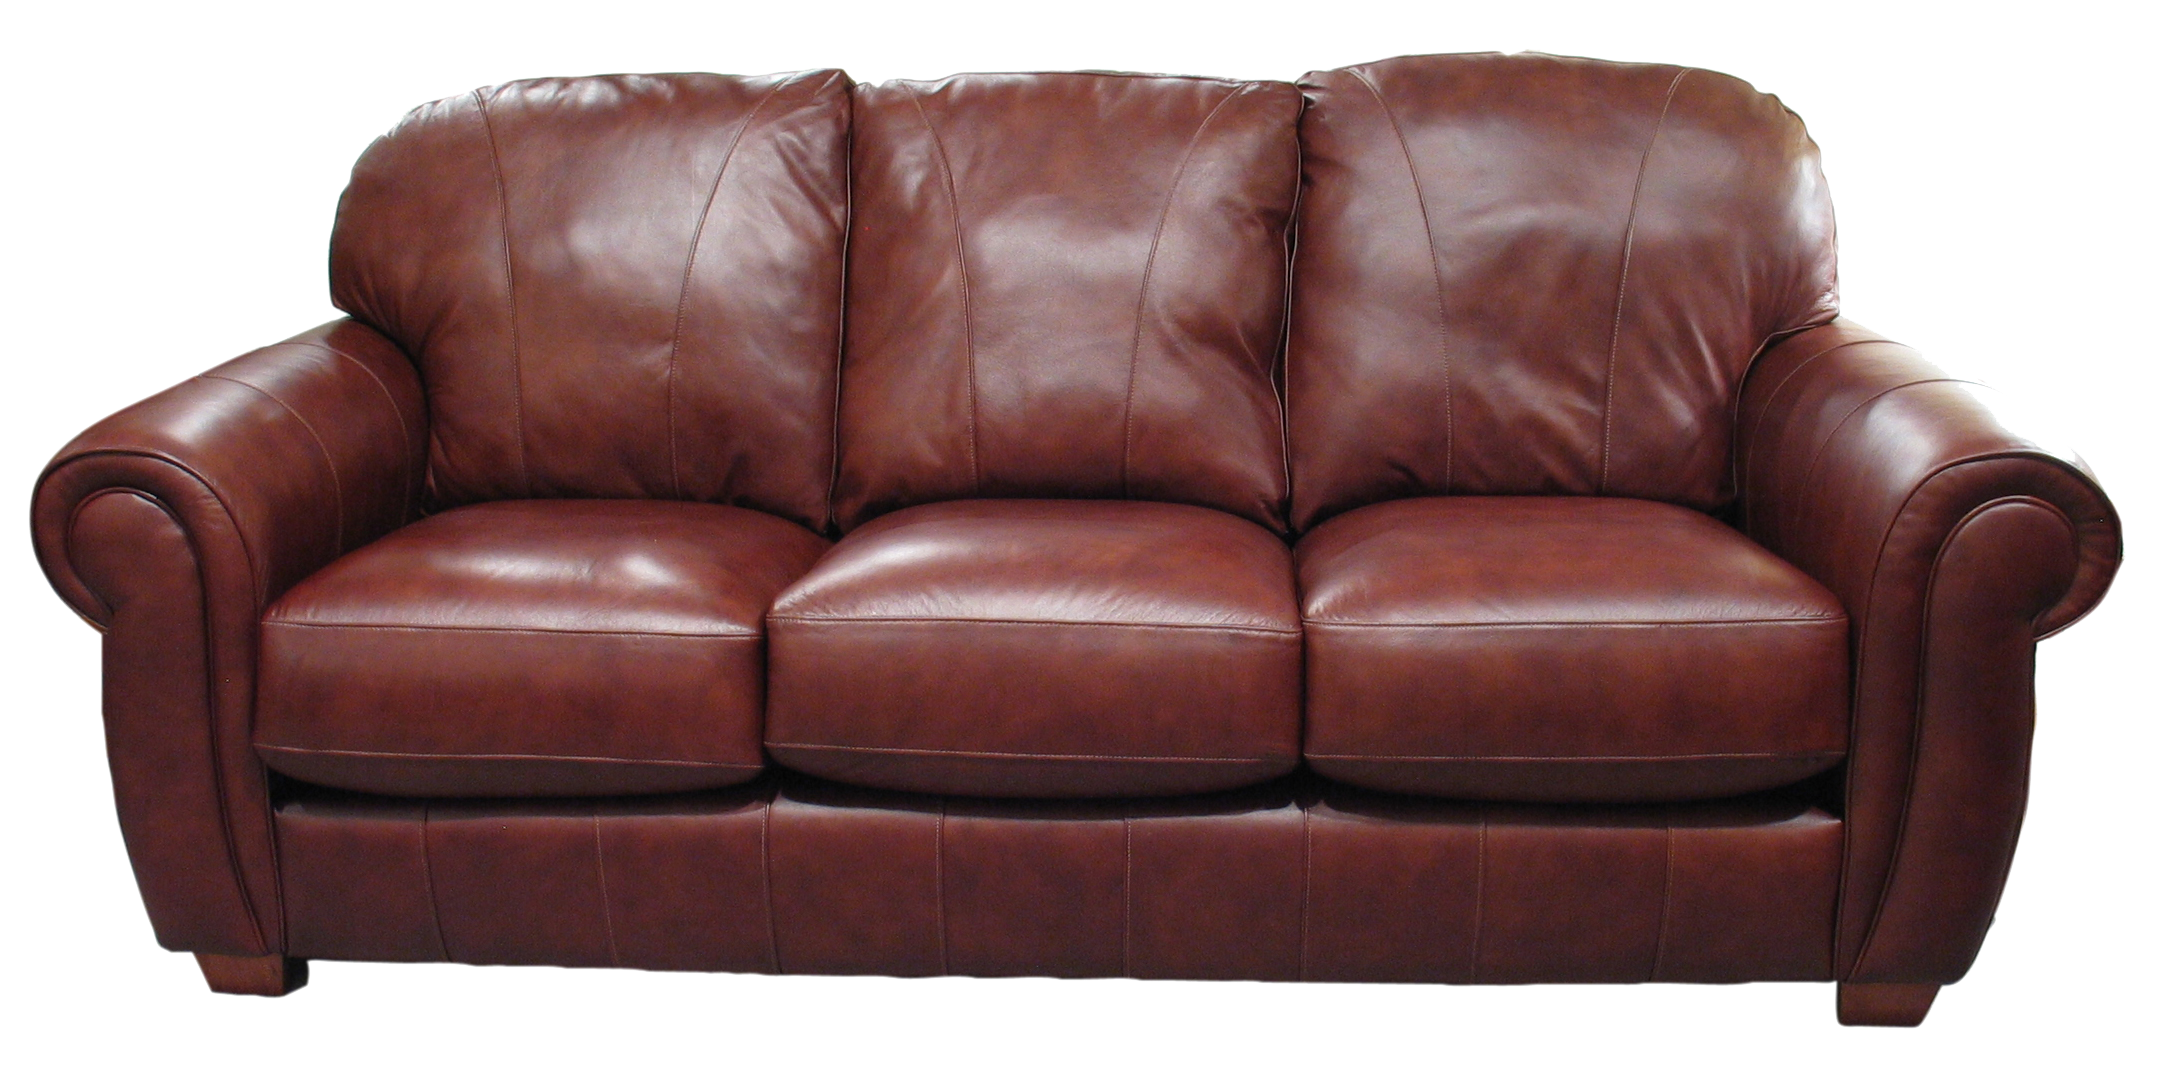 Couch HD PNG - 91468